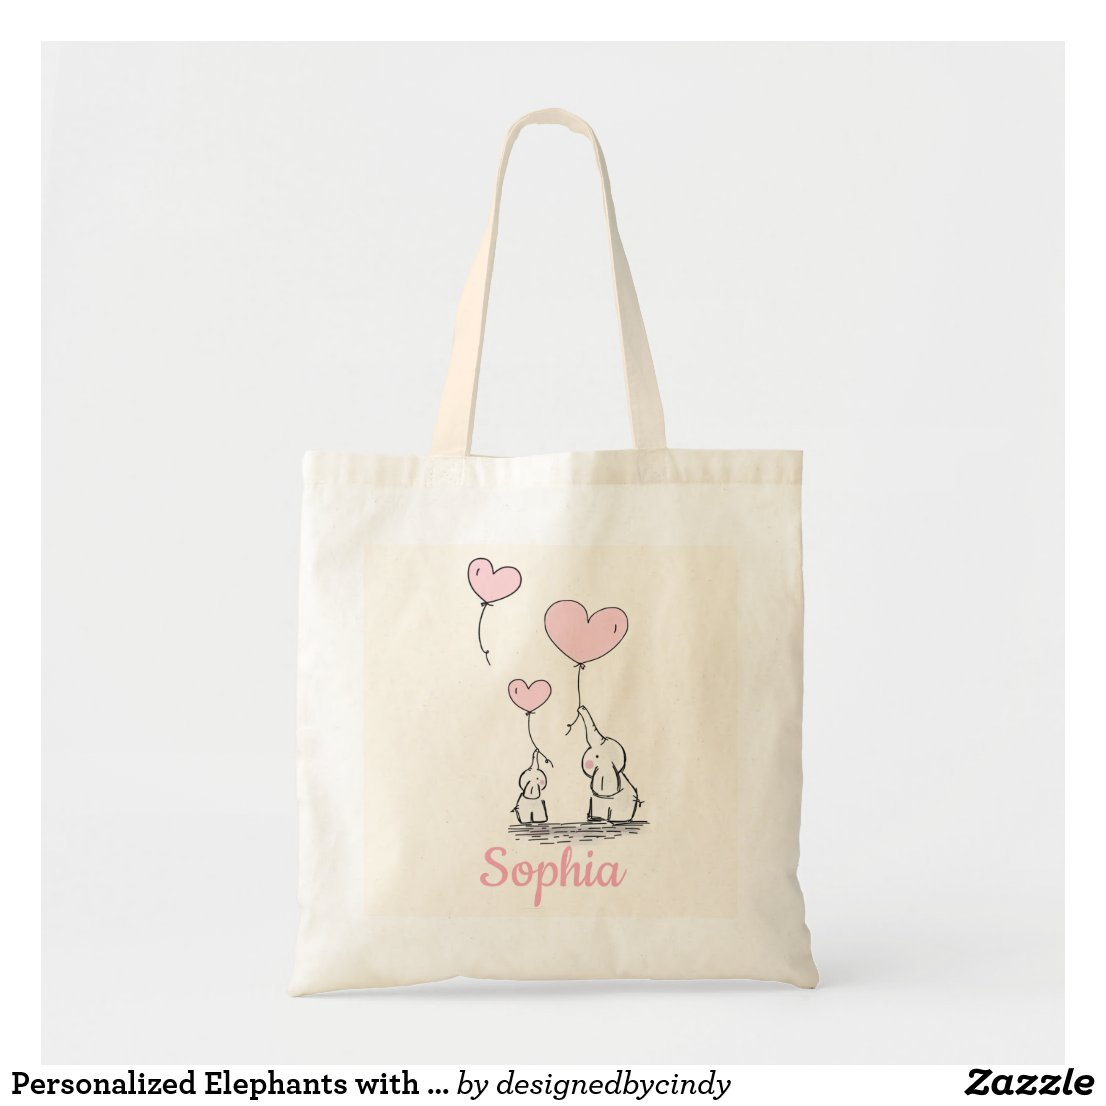 Personalised Elephants with Pink Heart Balloons Tote Bag